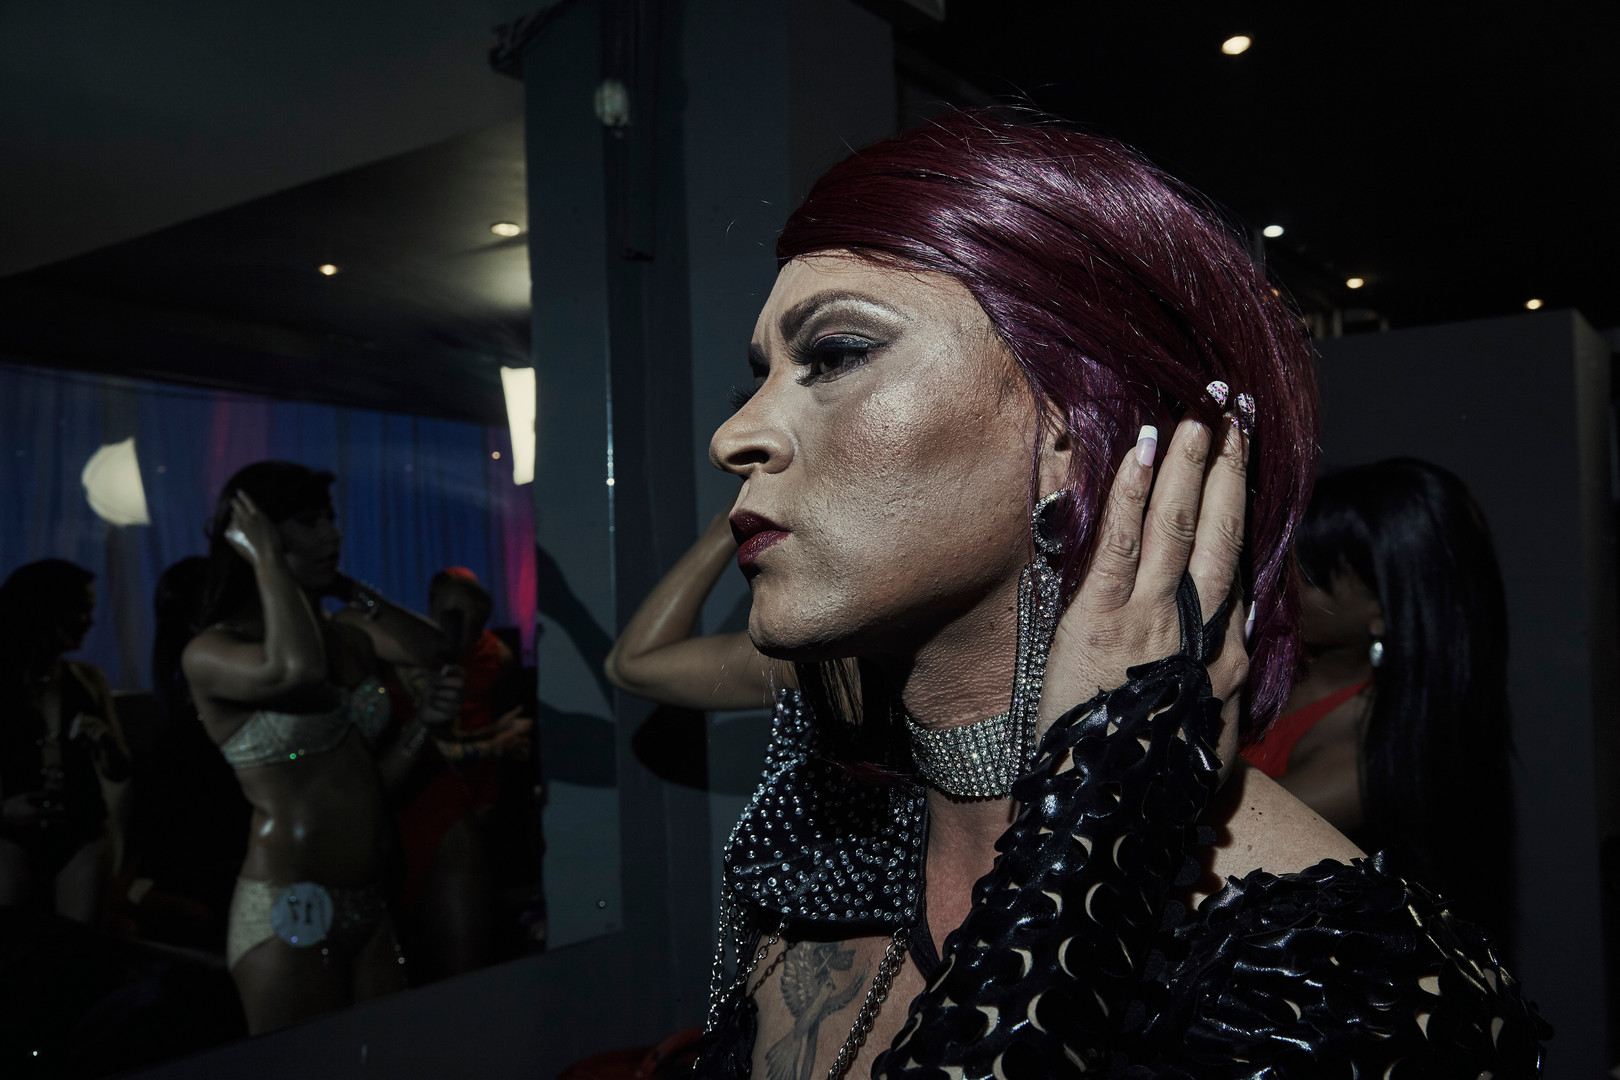 Chante Herries, a pageant queen and hair dresser, is getting ready backstage for the swimwear category of the LGBT Cape Peninsula pageant. The event is aimed at creating a positive understanding about the different forms of expression and identification of the LGBTQ family.